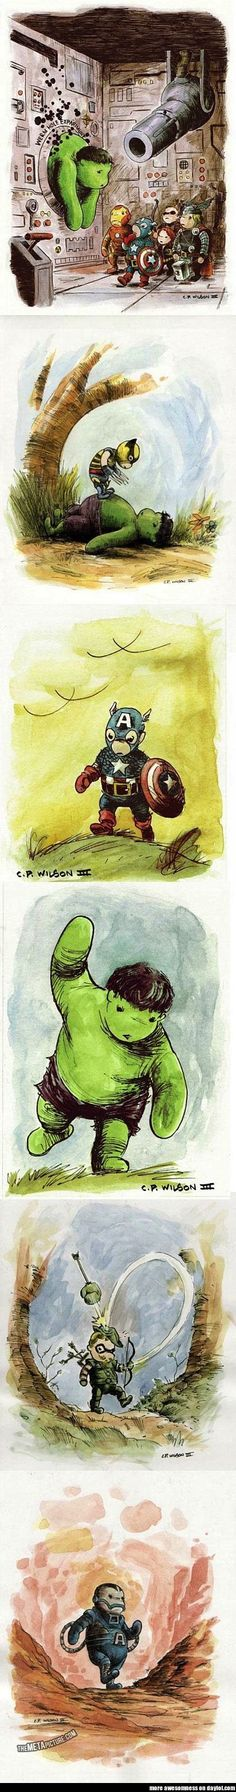 The Avengers, Winnie he Pooh edition